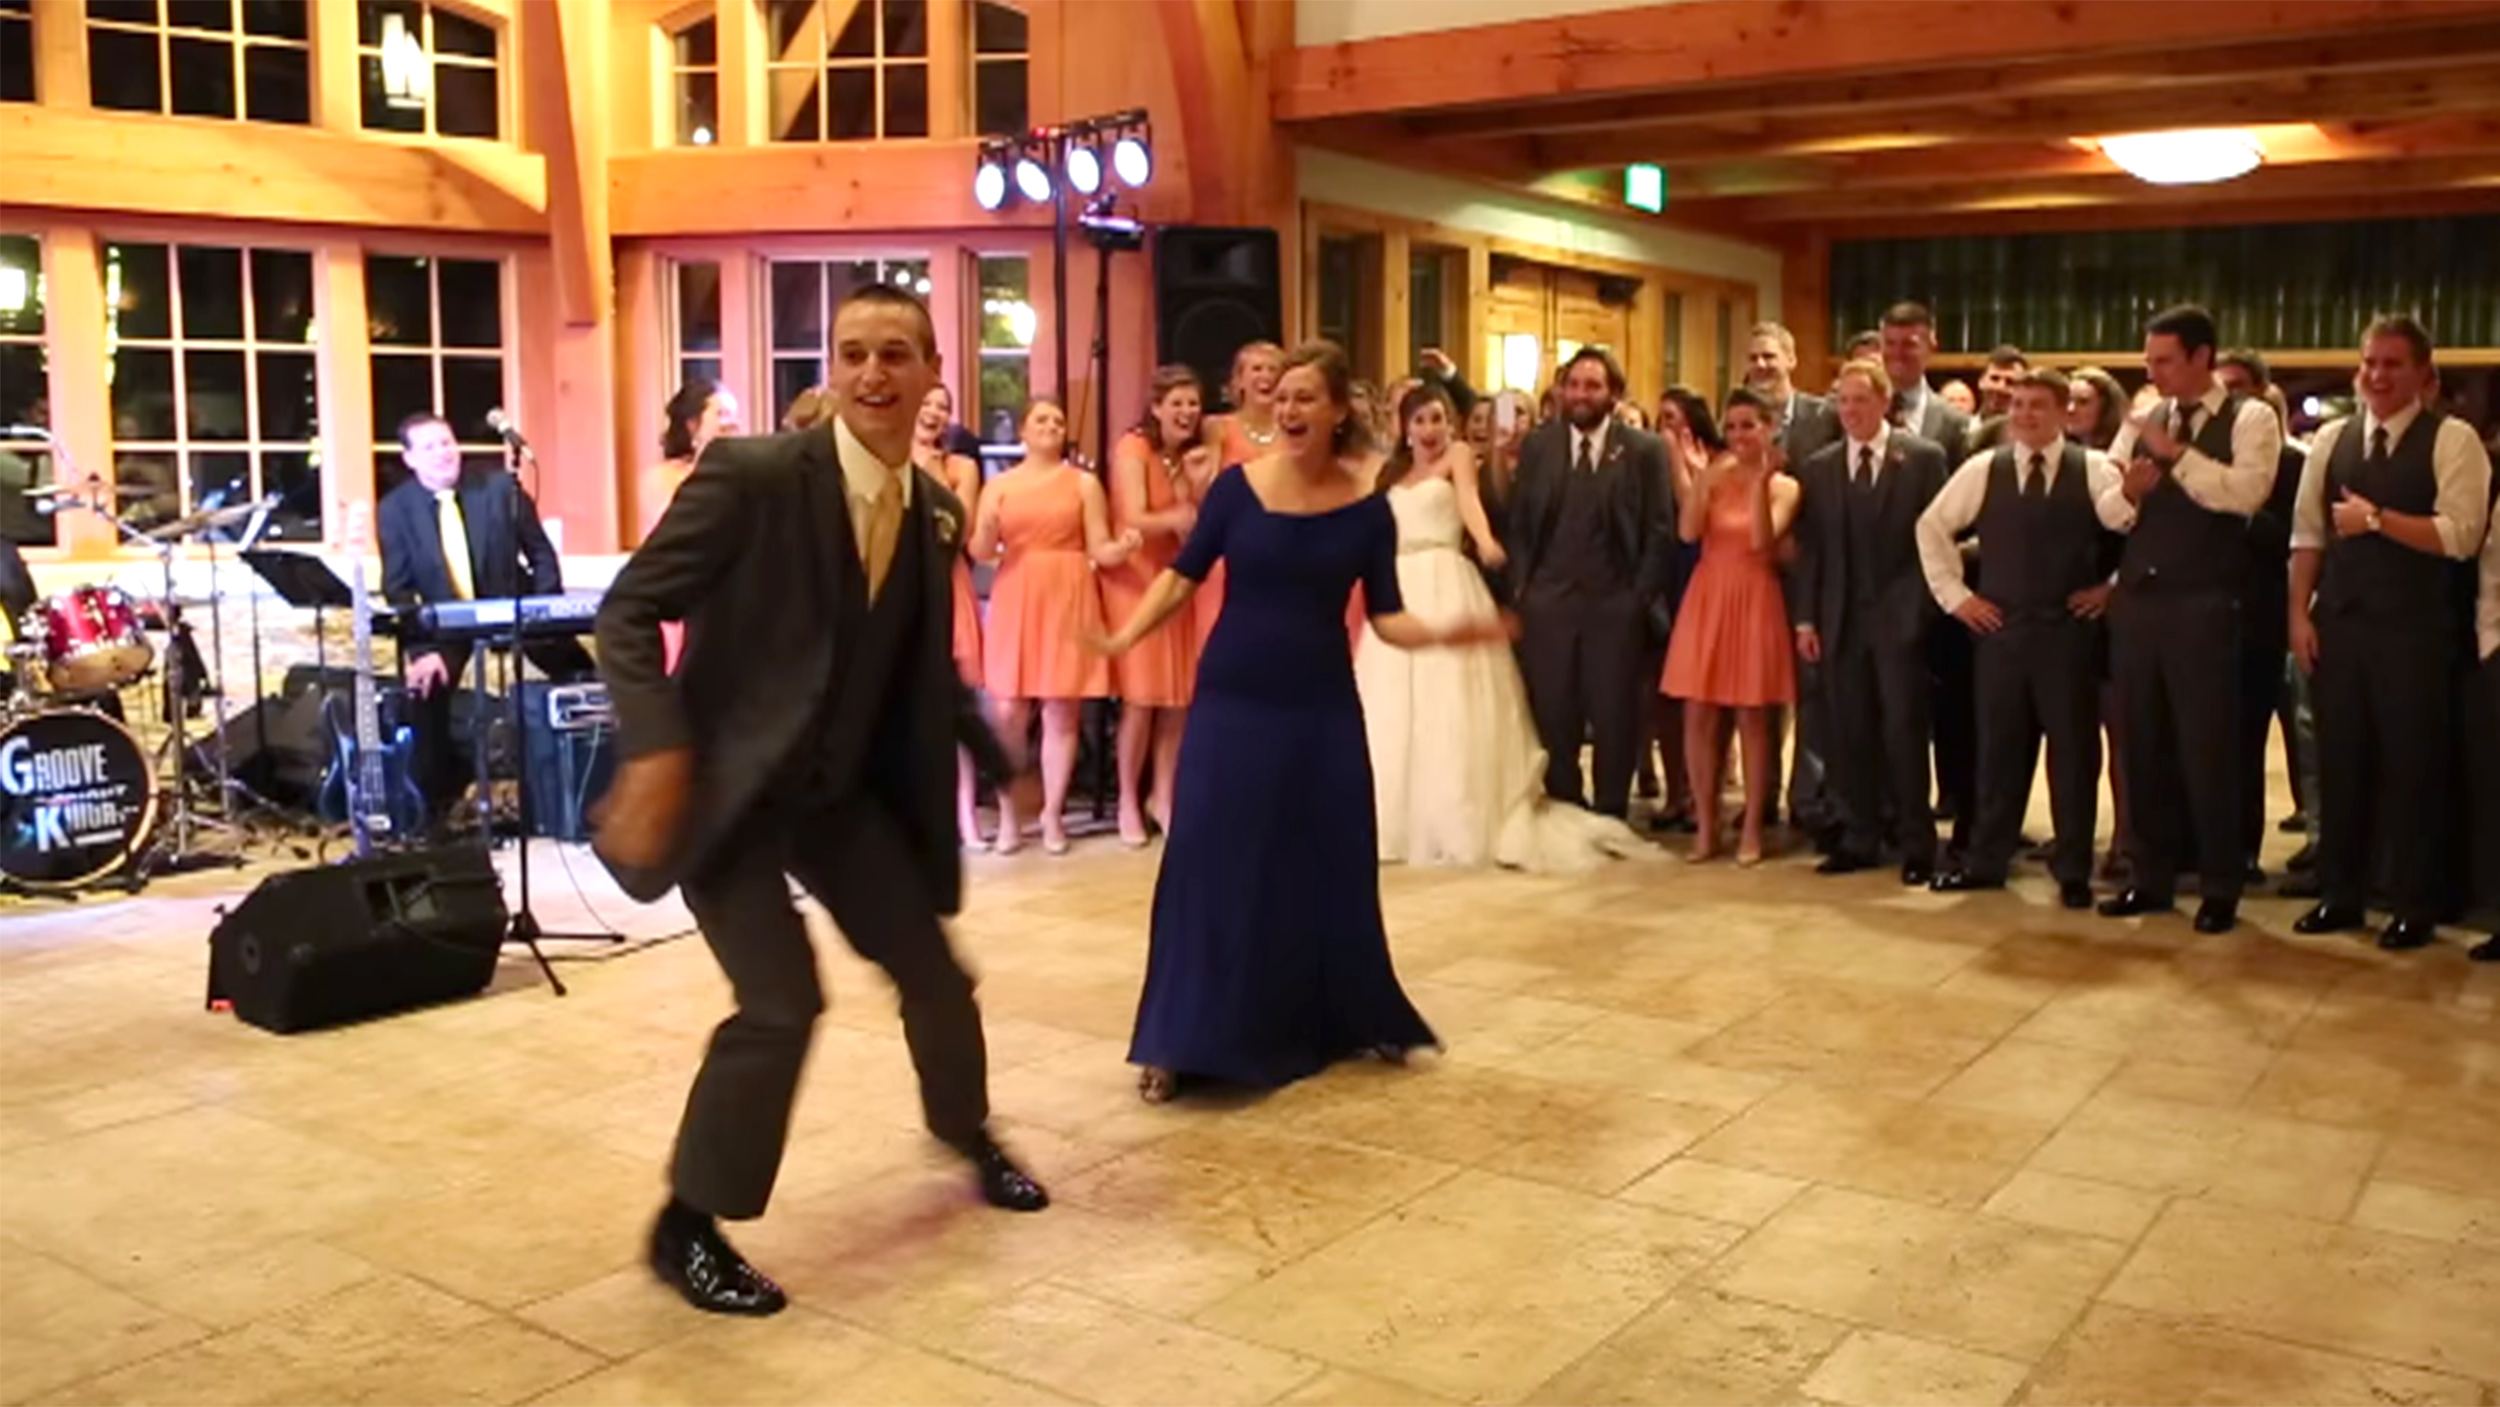 Shake It! Mom, Son Perform Wedding Dance For The Ages